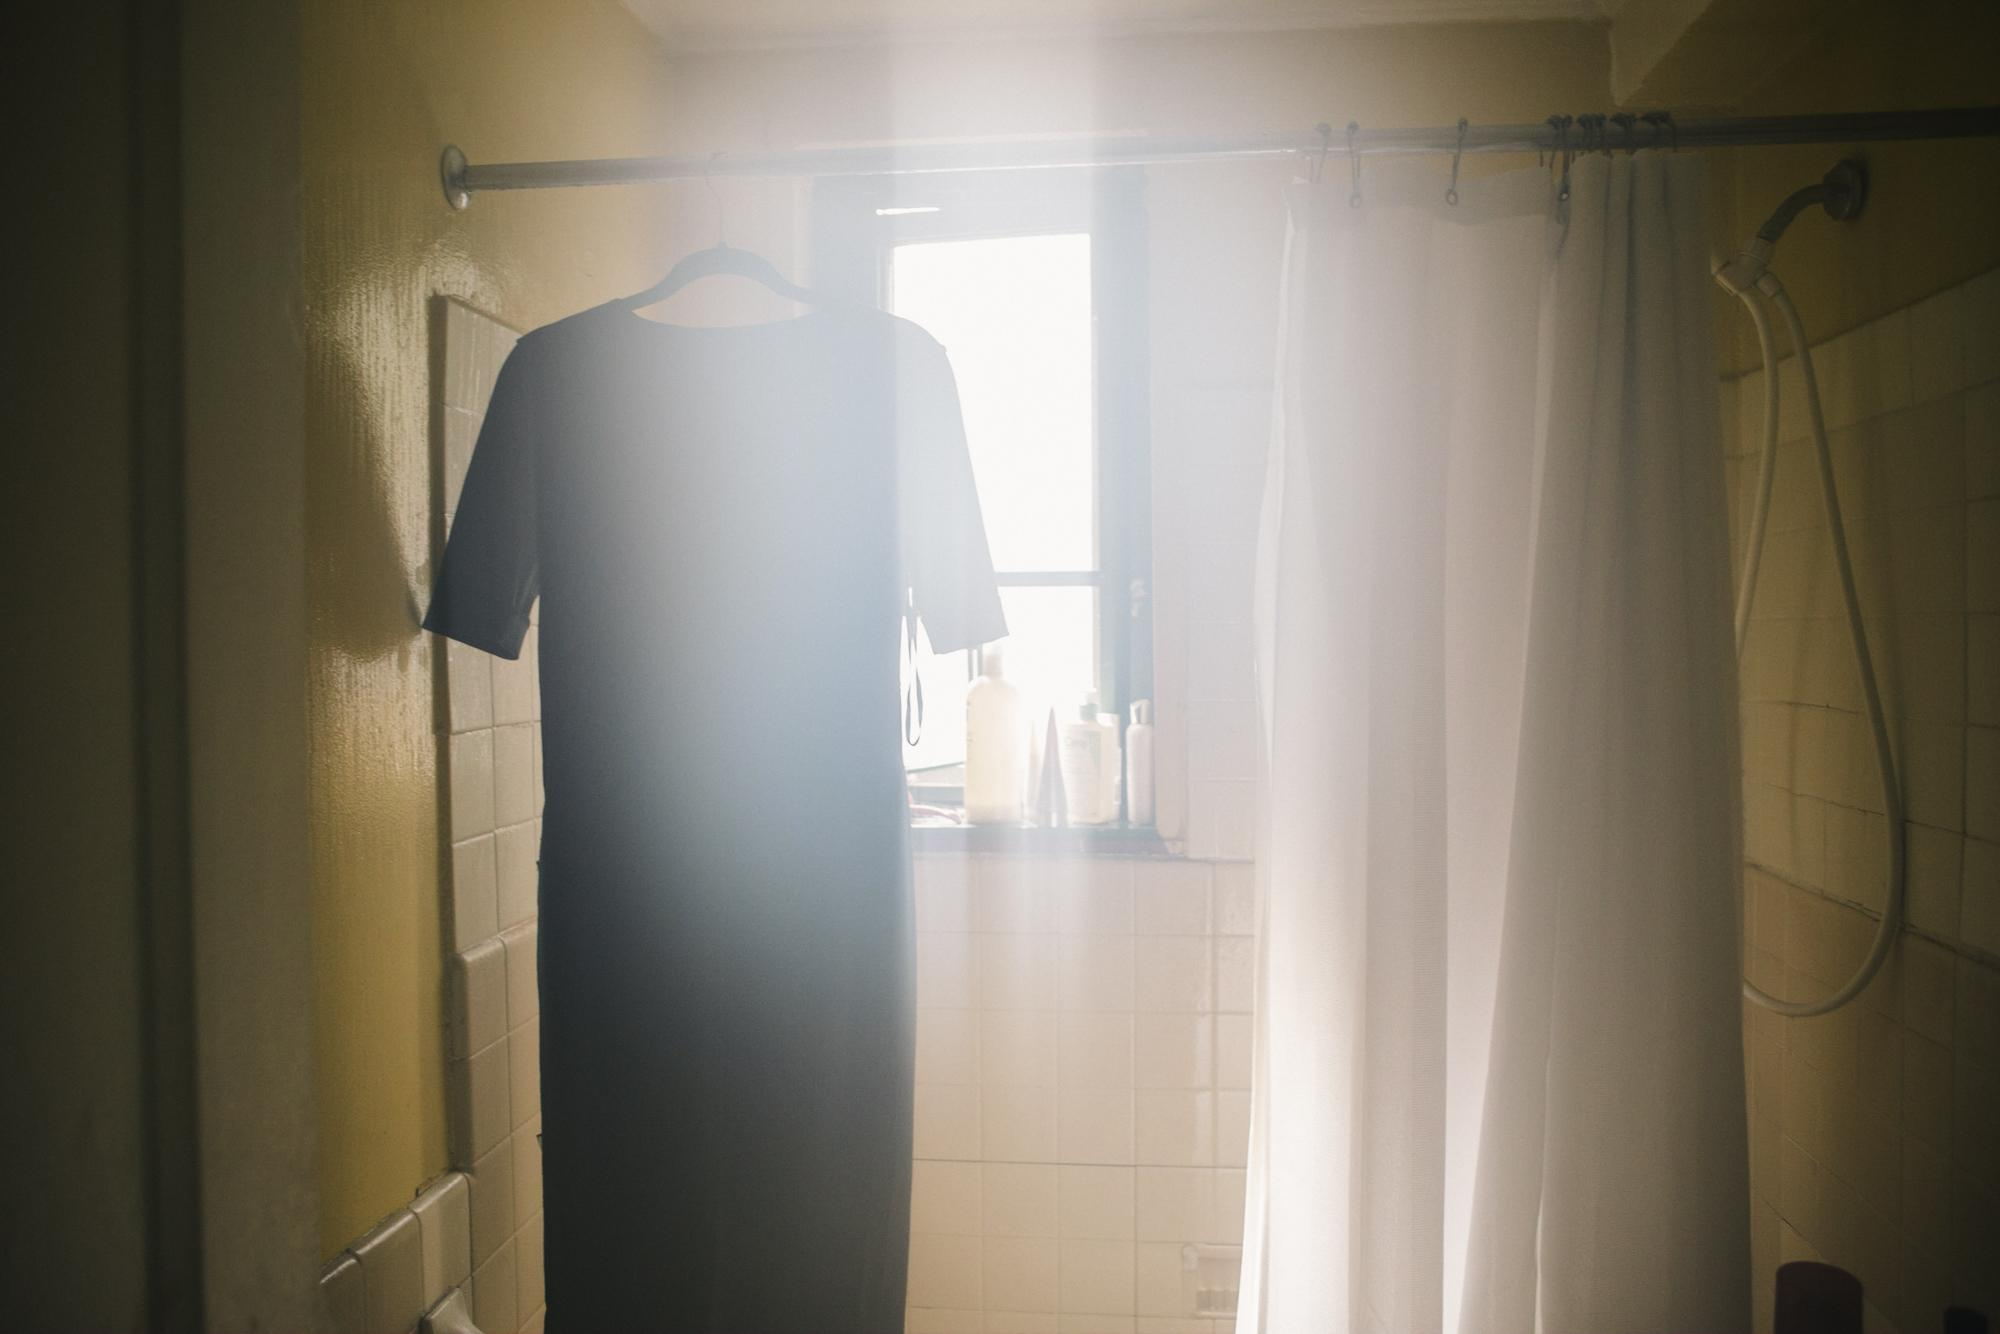 The early morning sun peers through the window as Alexandria steams one of her dresses in her bathroom before starting a day full of interviews, in the Parkchester neighborhood of The Bronx, New York, May 11, 2018.